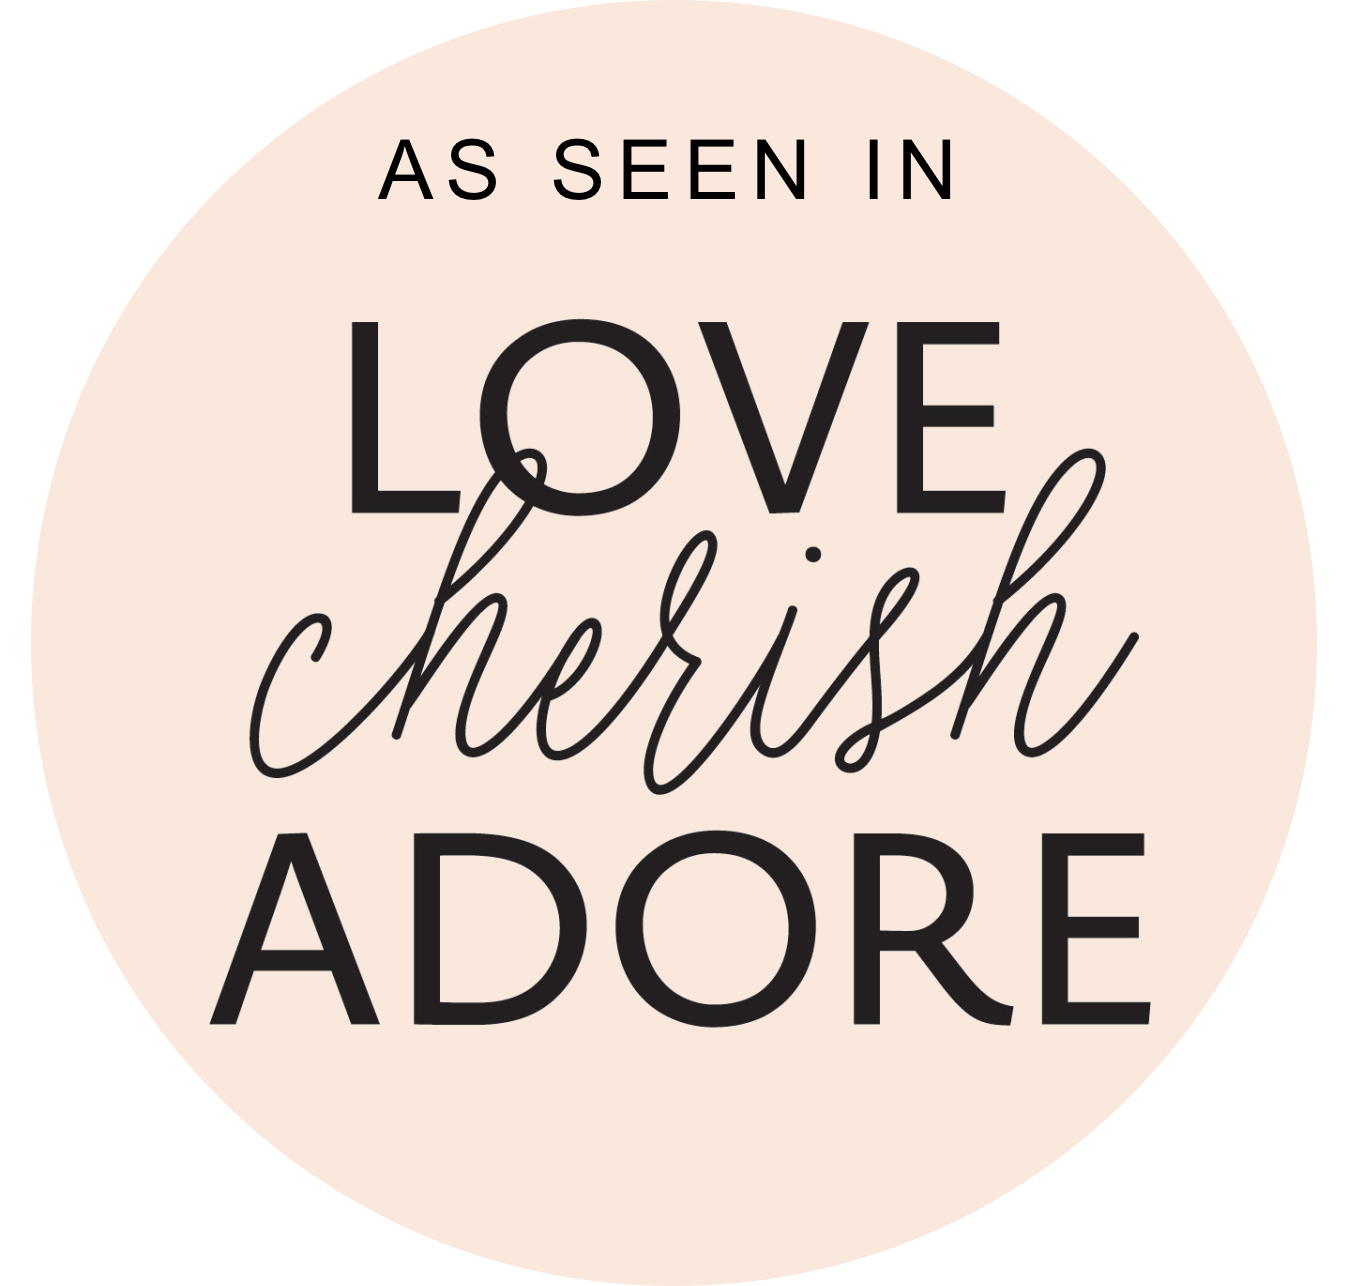 as seen in love cherish adore.png